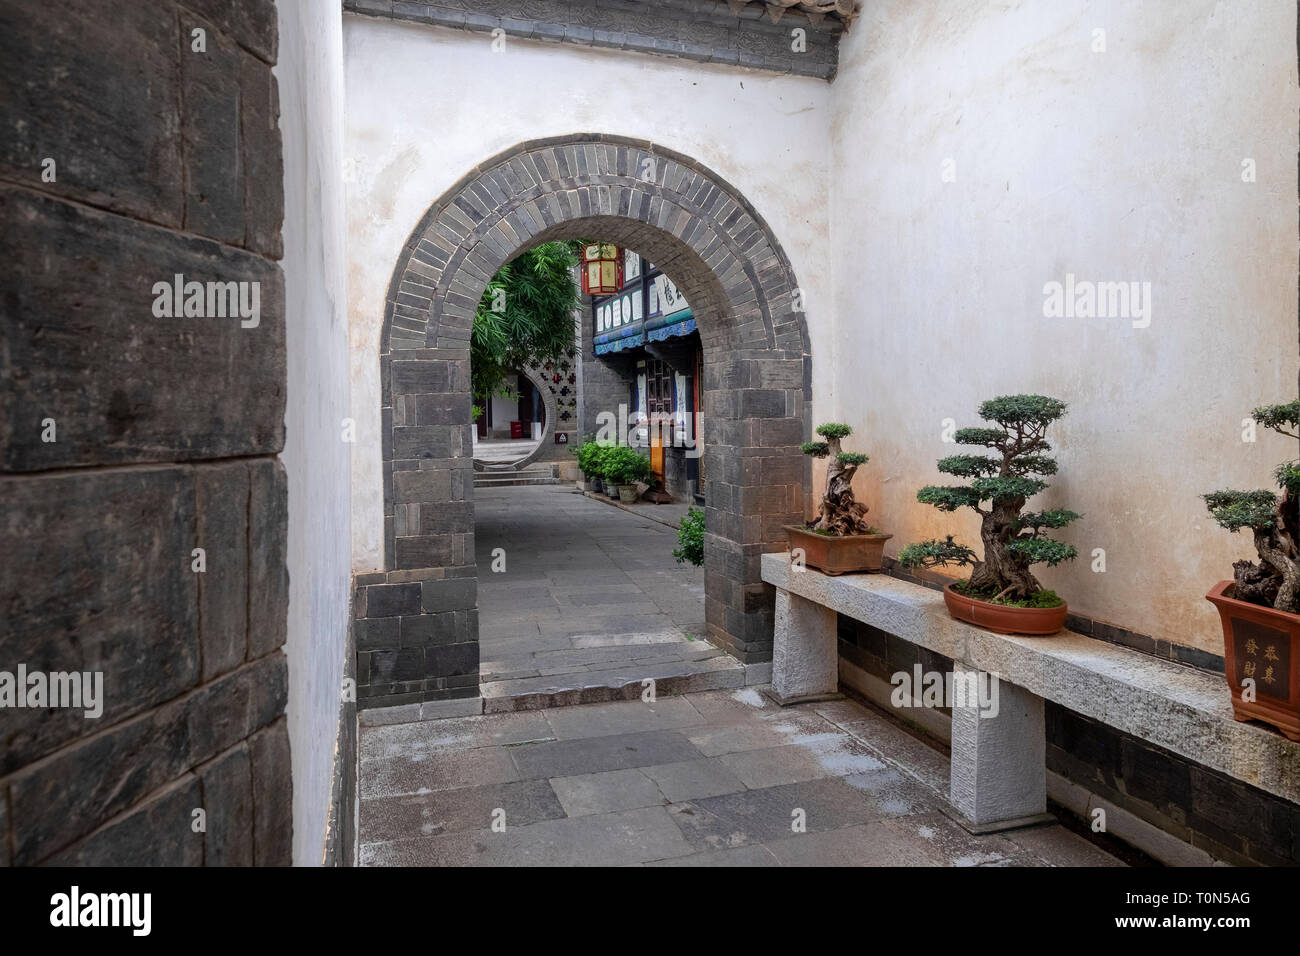 Interior courtyard, Zhu Family house, Jianshui Ancient Town, Yunnan Province, China - Stock Image